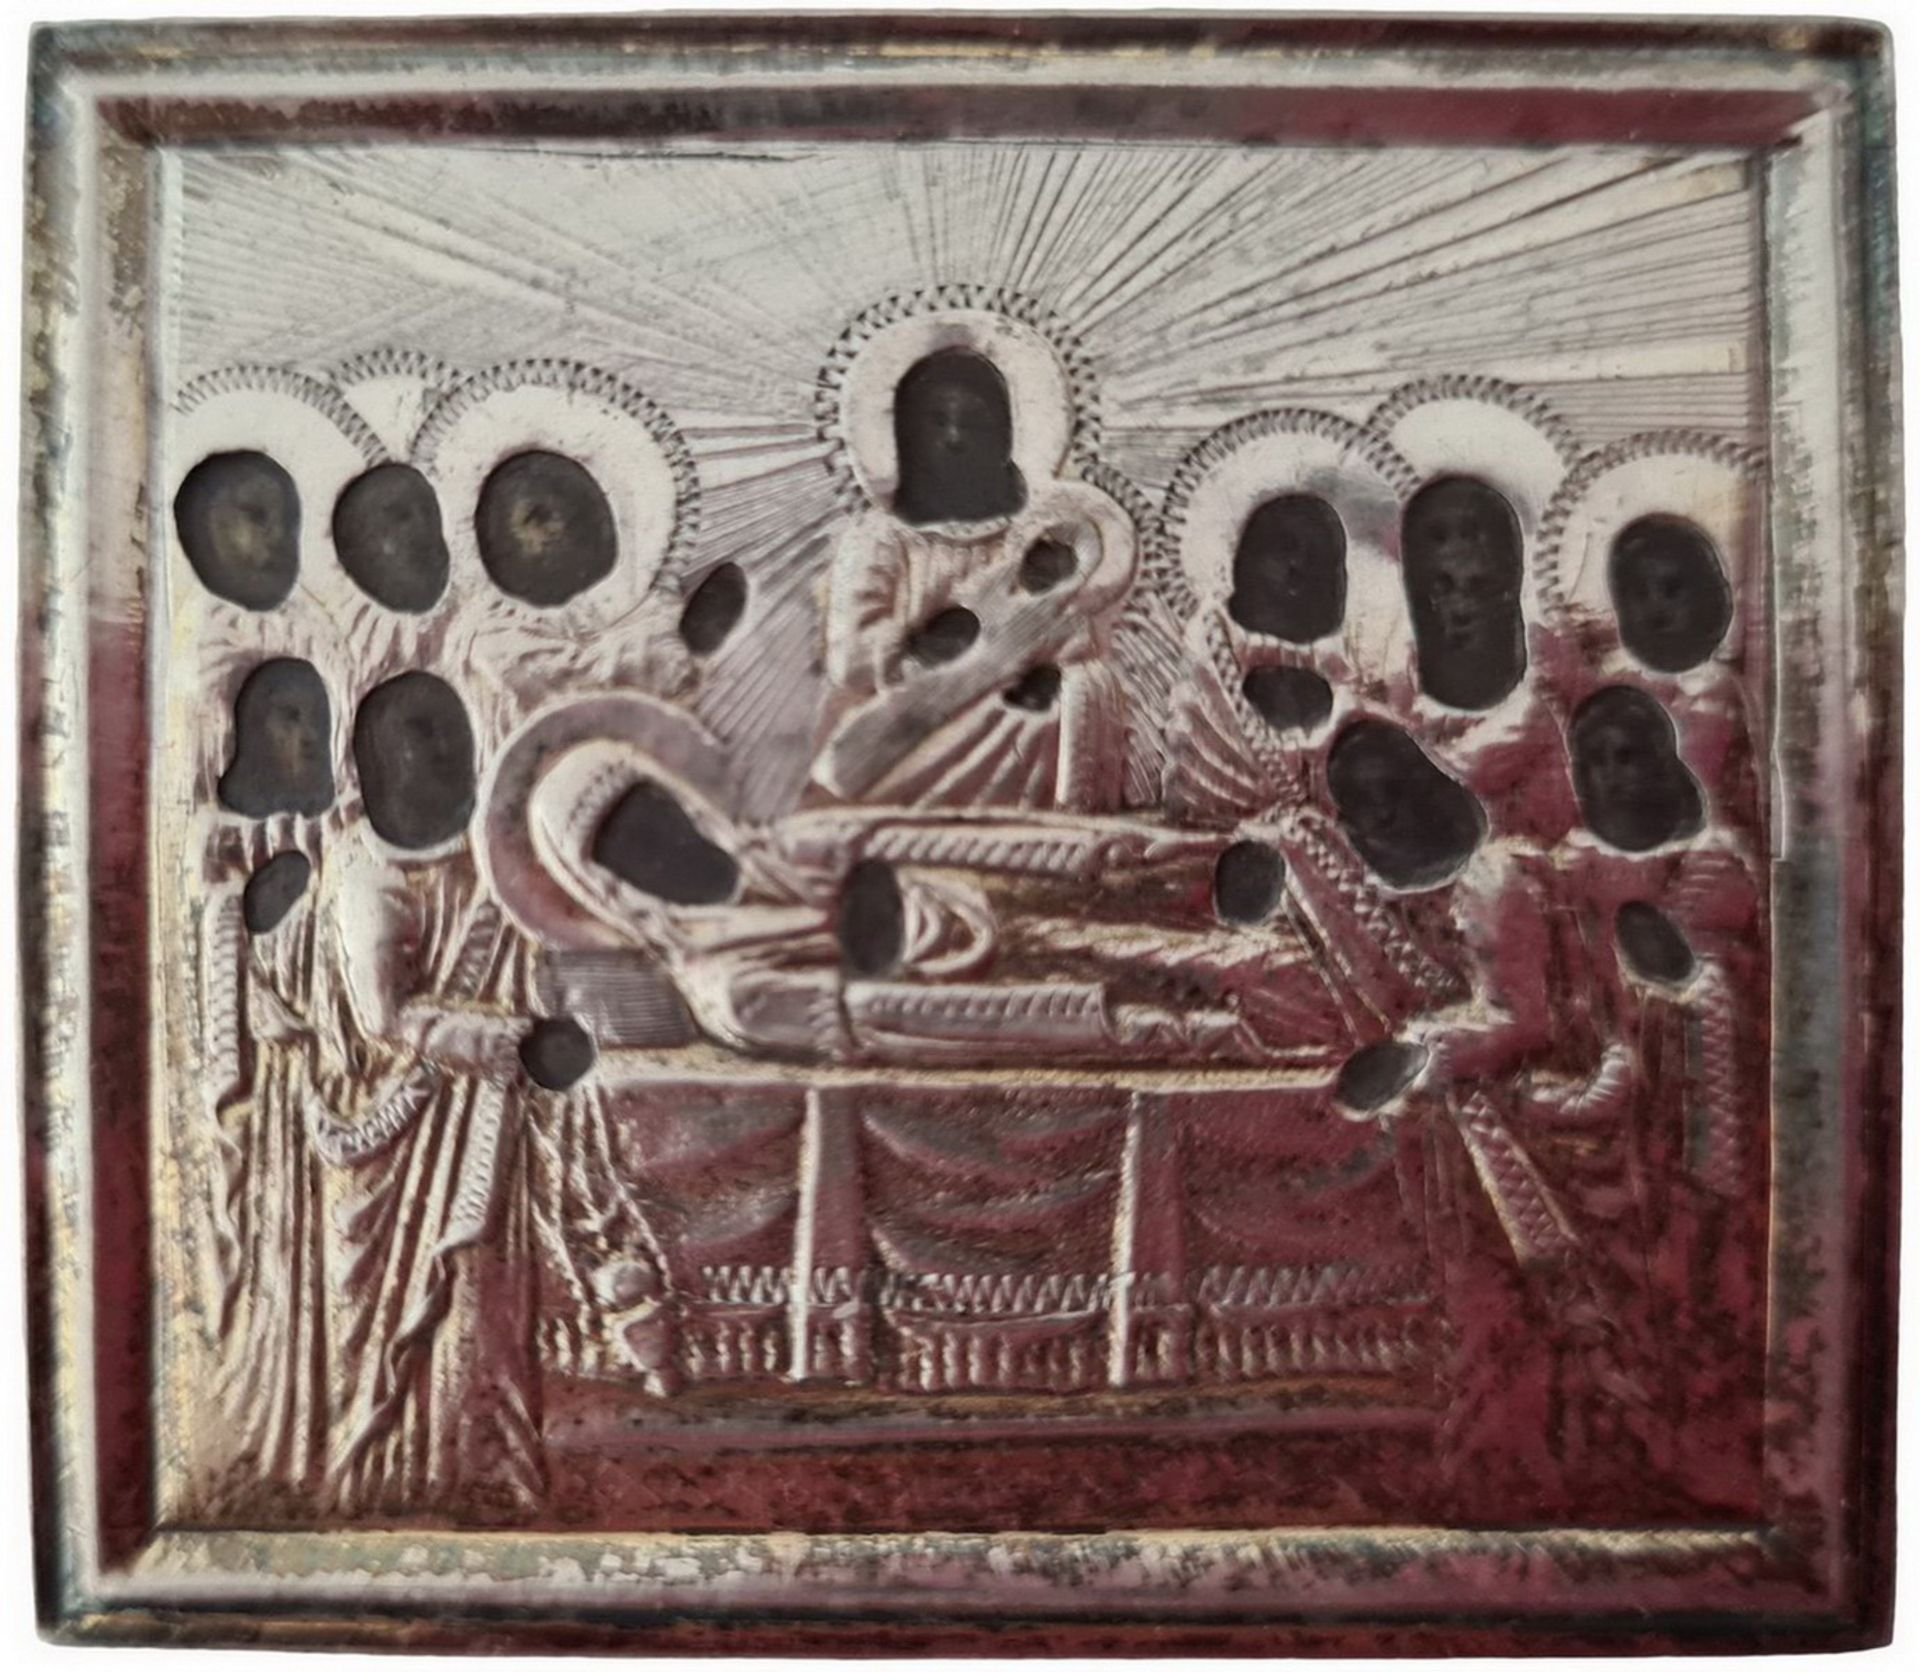 """Russian icon """"Dormition of the Mother of God"""" in silver oklad. - Saint-Petersburg, 19th century; 4x5 - Bild 2 aus 3"""